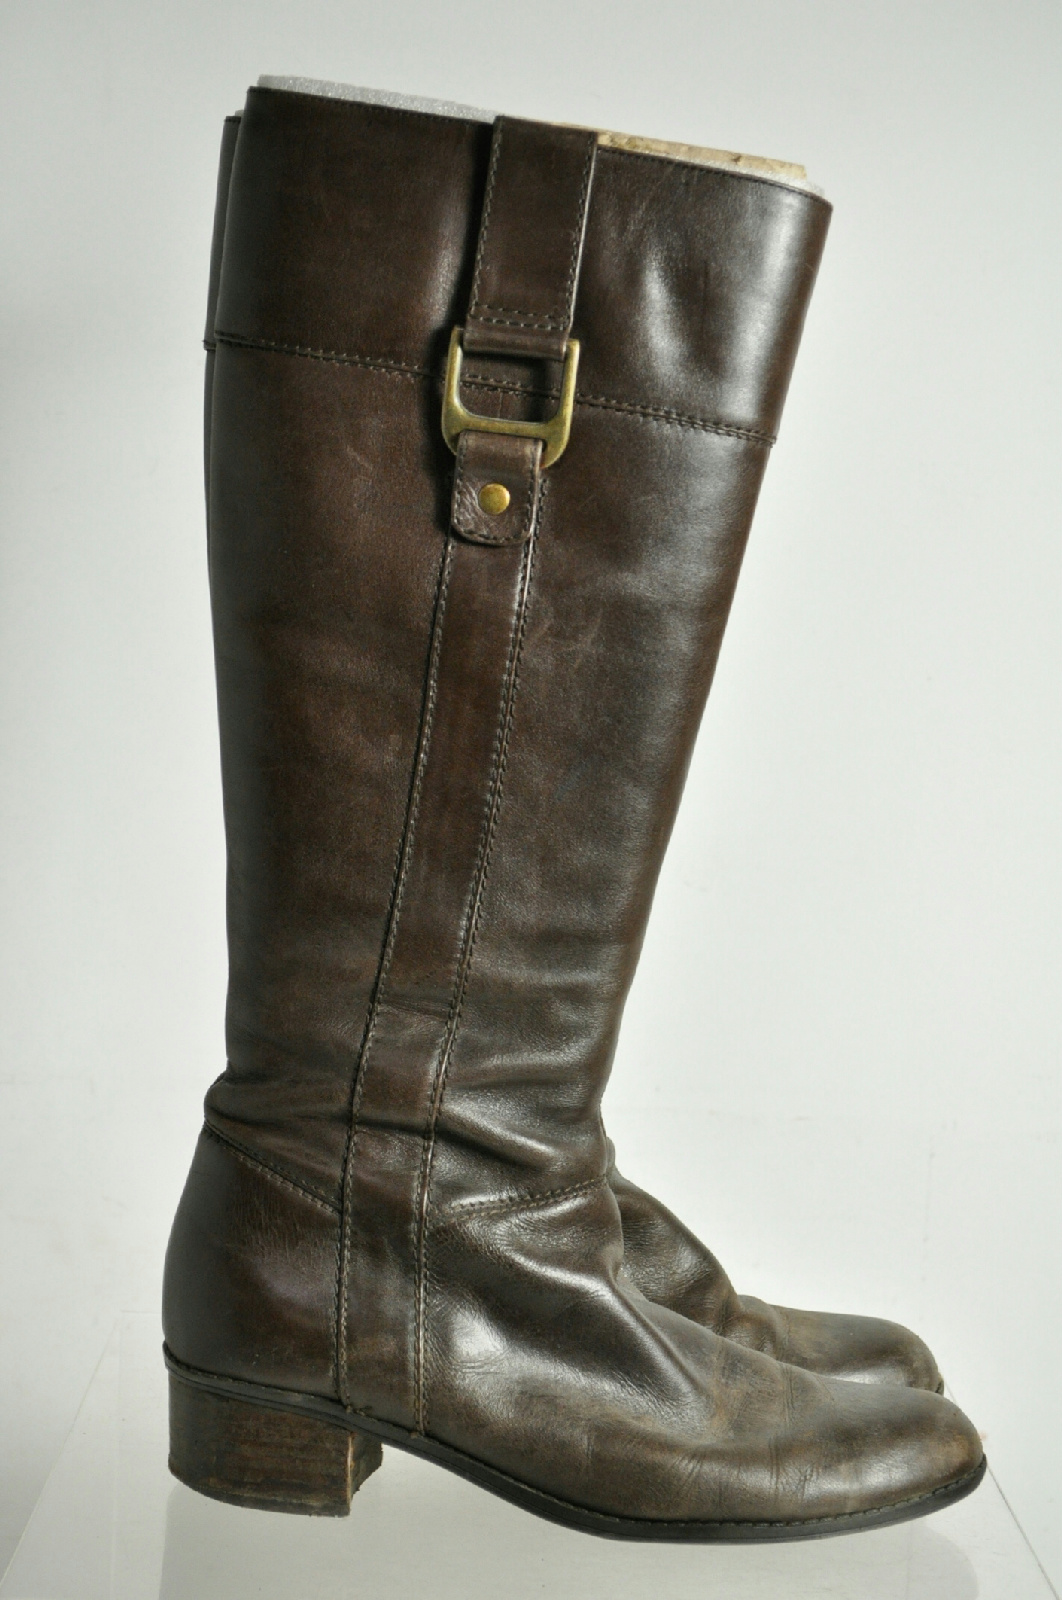 English Riding Boots Tall boots for ladies, men and kids. We also have paddock boots for just hacking around. Shires Equestrian Boot Care Kit. $ QUICK VIEW. FoxHuntingShop Kiwi Boot Polish. $ SALE. QUICK VIEW. Shires Equestrian Broadway Long Leather Boots .